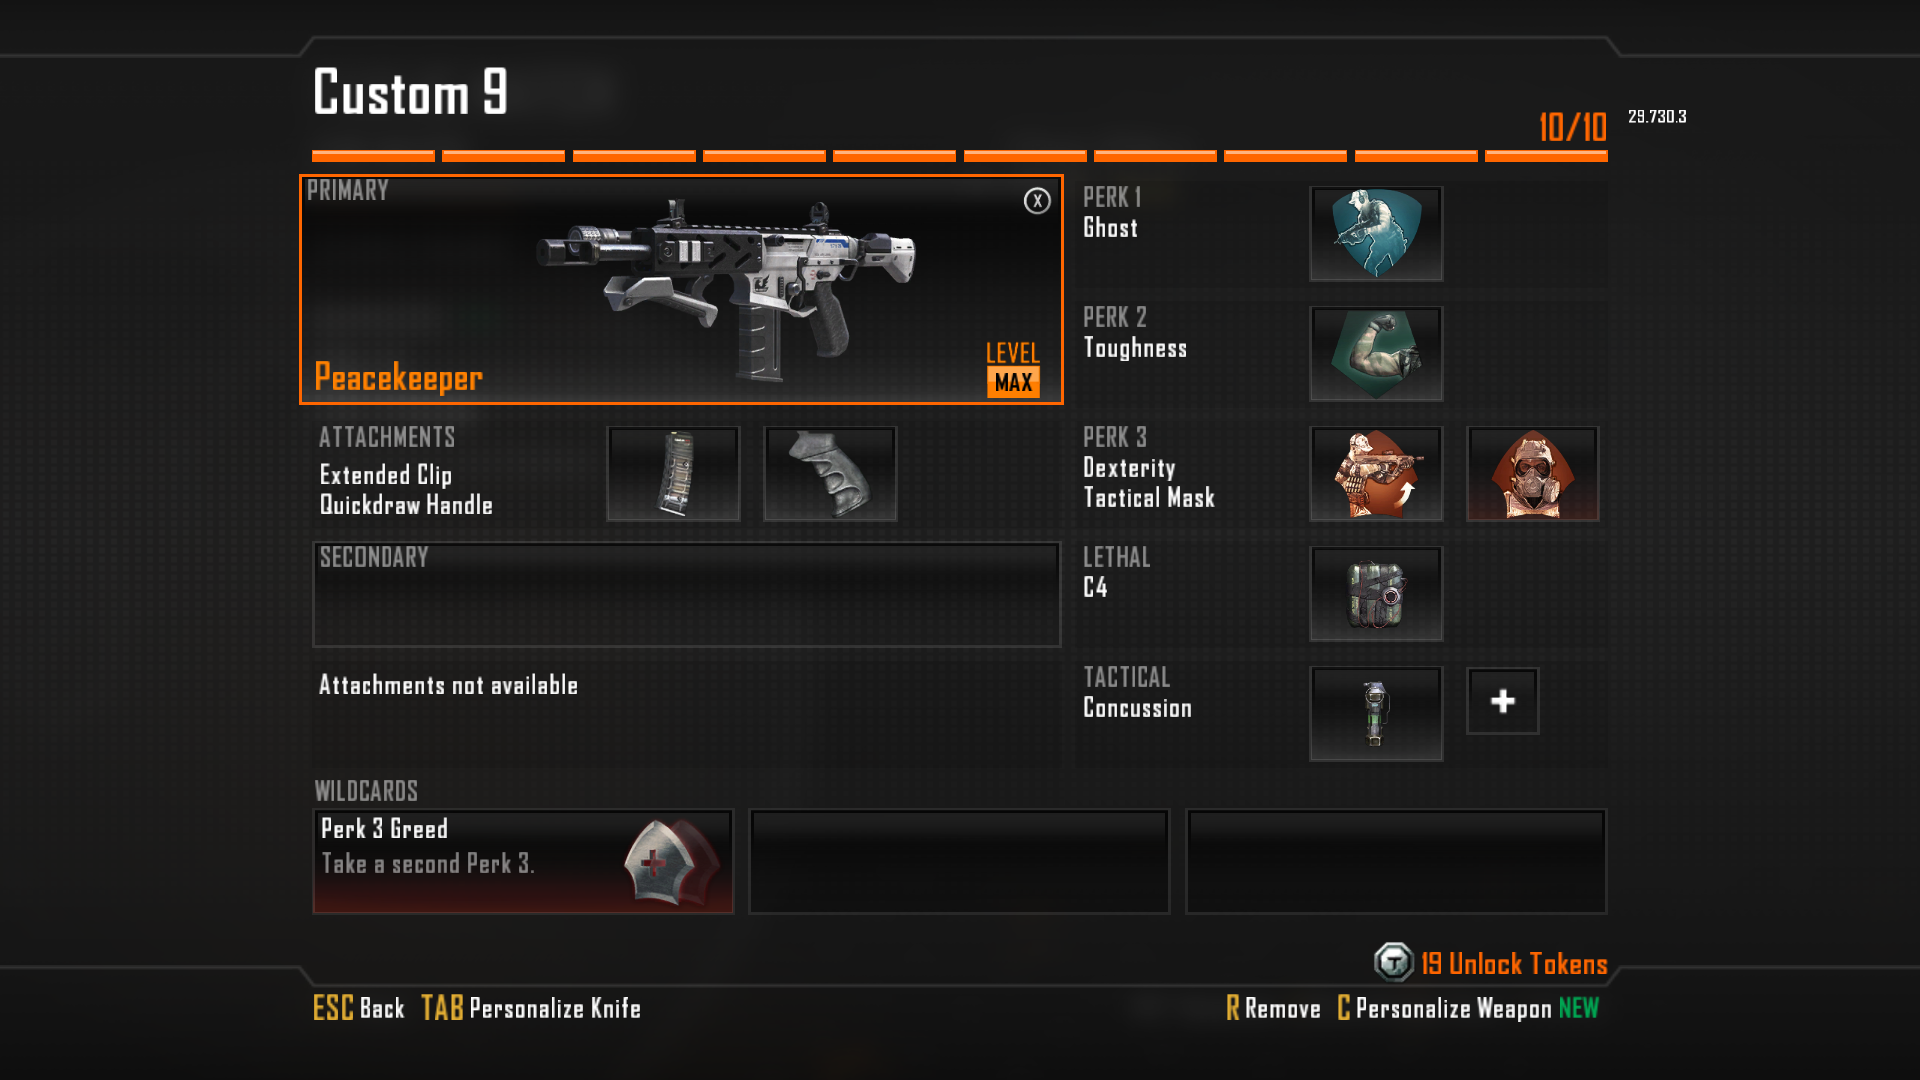 Best Class Setup, Call of Duty Black Ops 2 Weapon Guide (Best